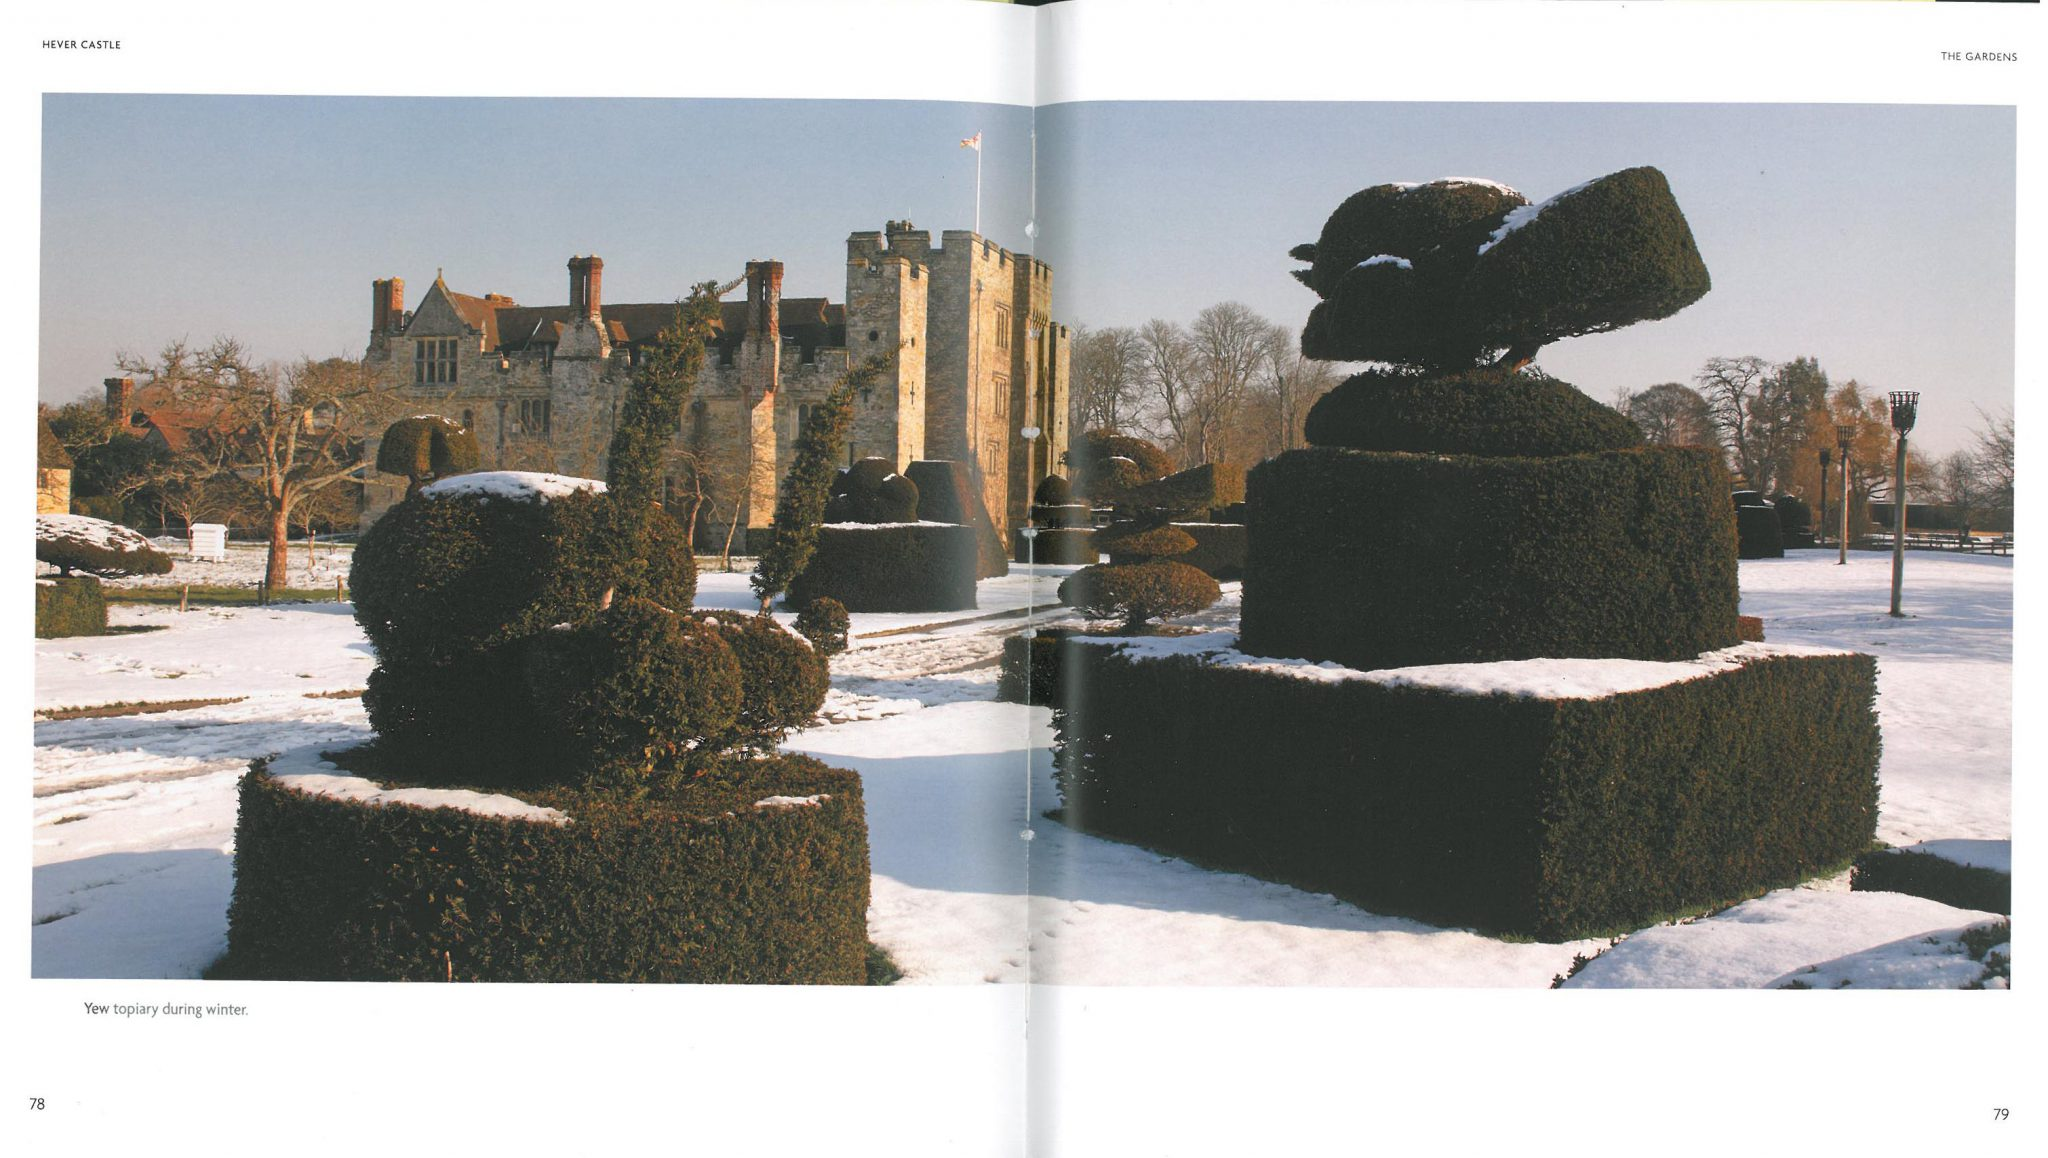 What Hever Castle's moat-side garden probably looks like, right now. Image courtesy of Hever Castle.